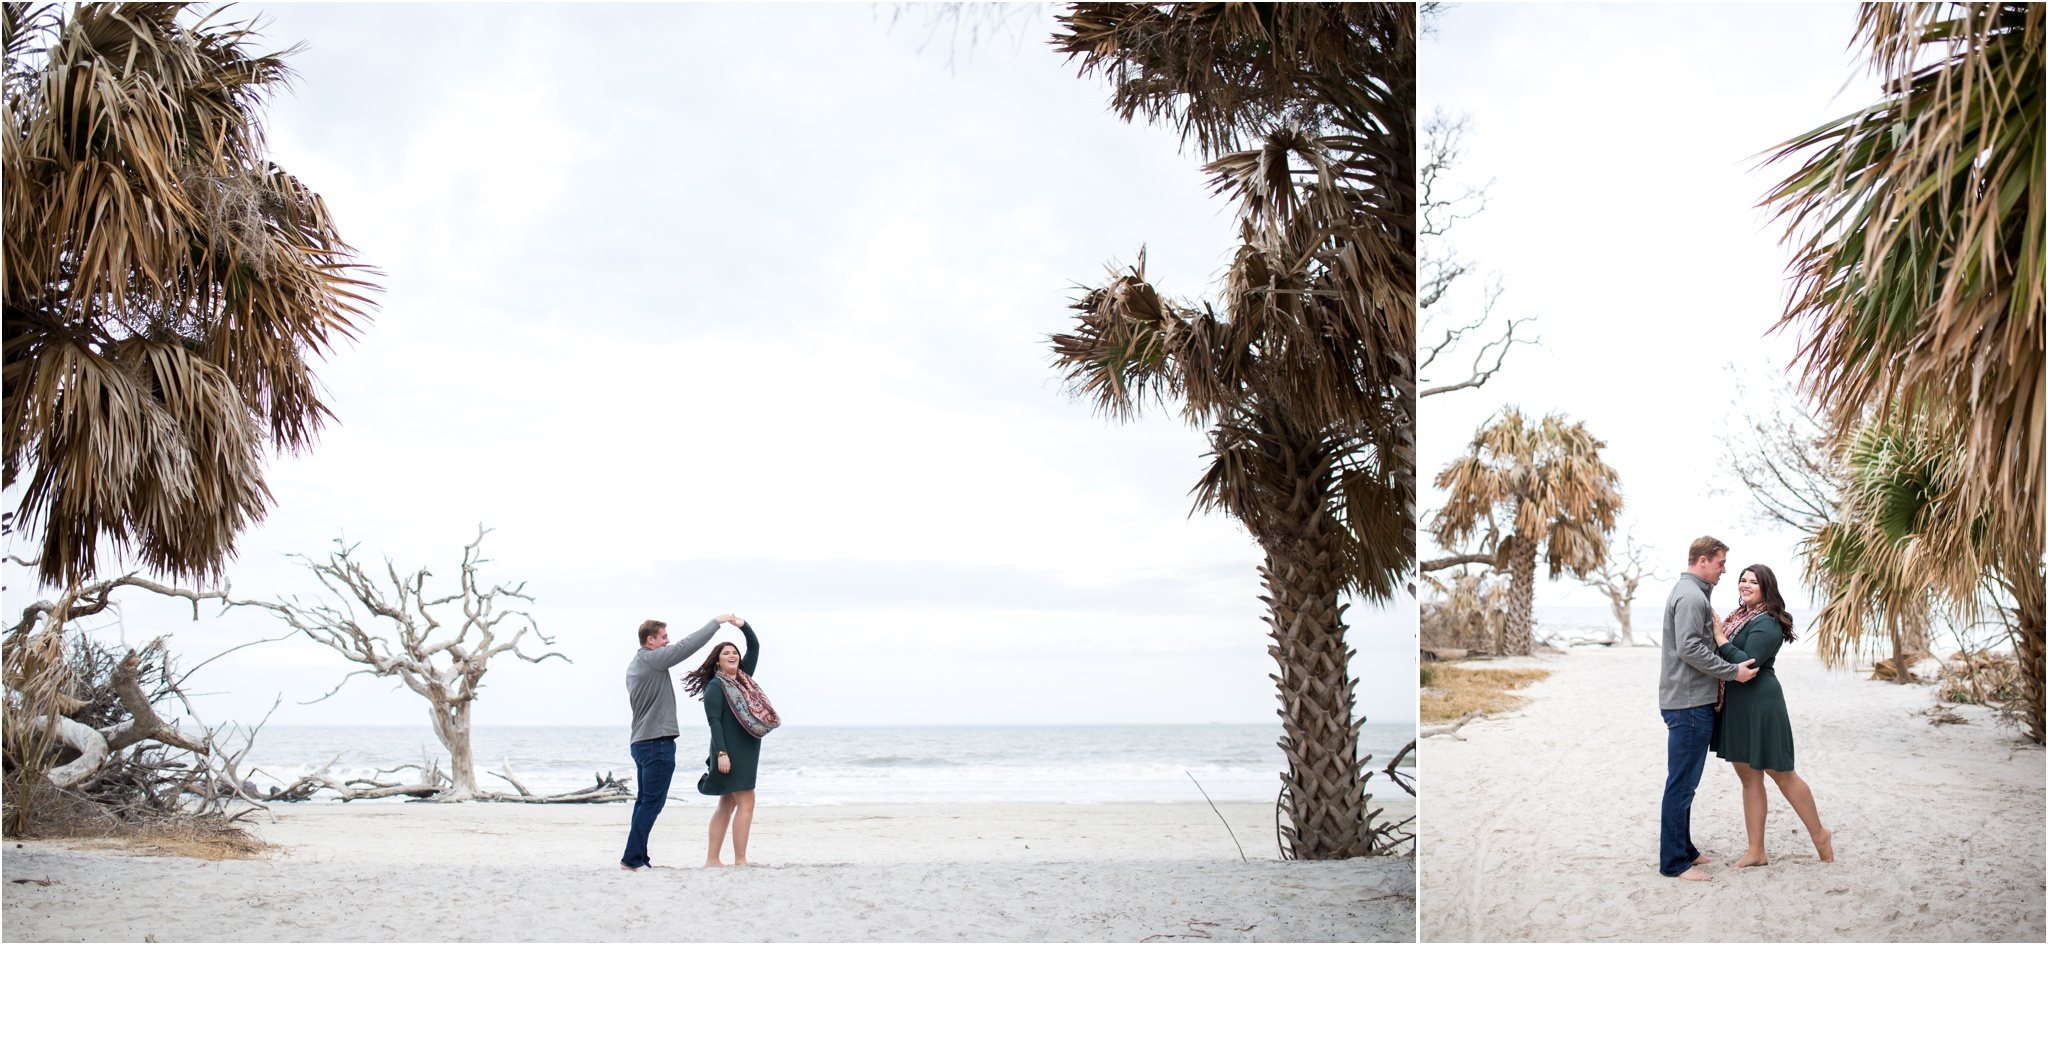 Rainey_Gregg_Photography_St._Simons_Island_Georgia_California_Wedding_Portrait_Photography_1641.jpg